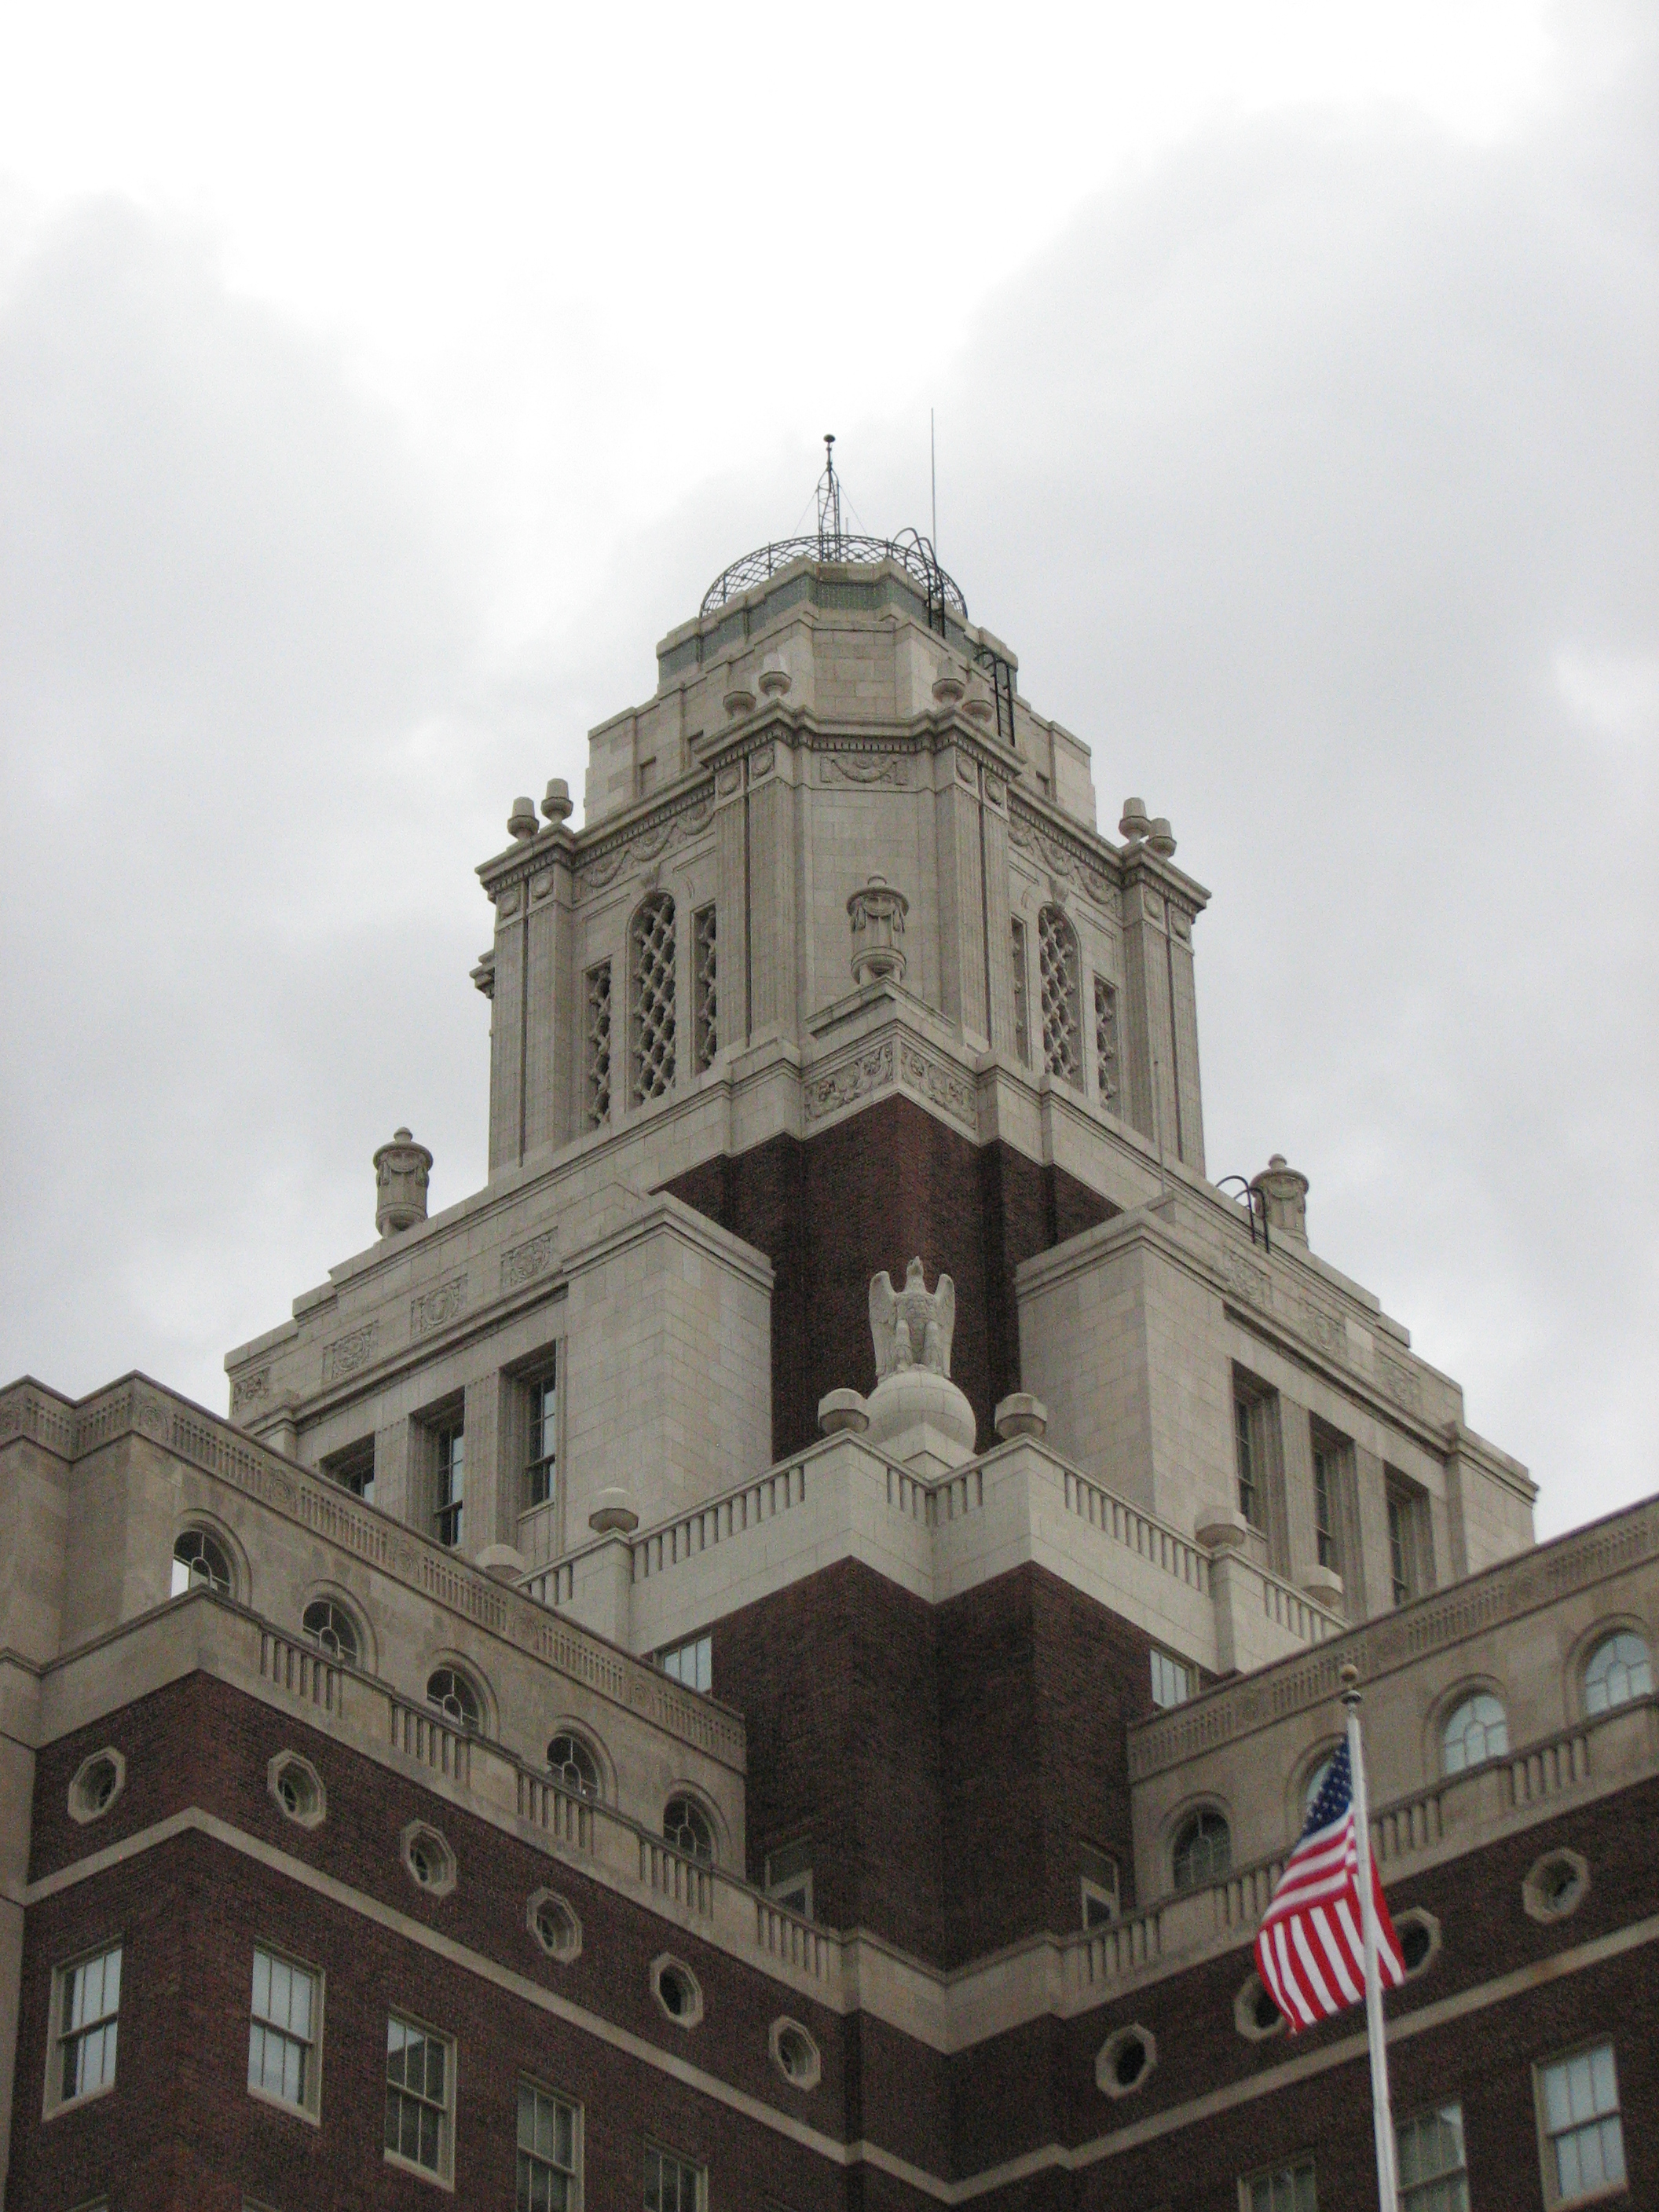 The building is topped with a symbolic lighthouse lantern.